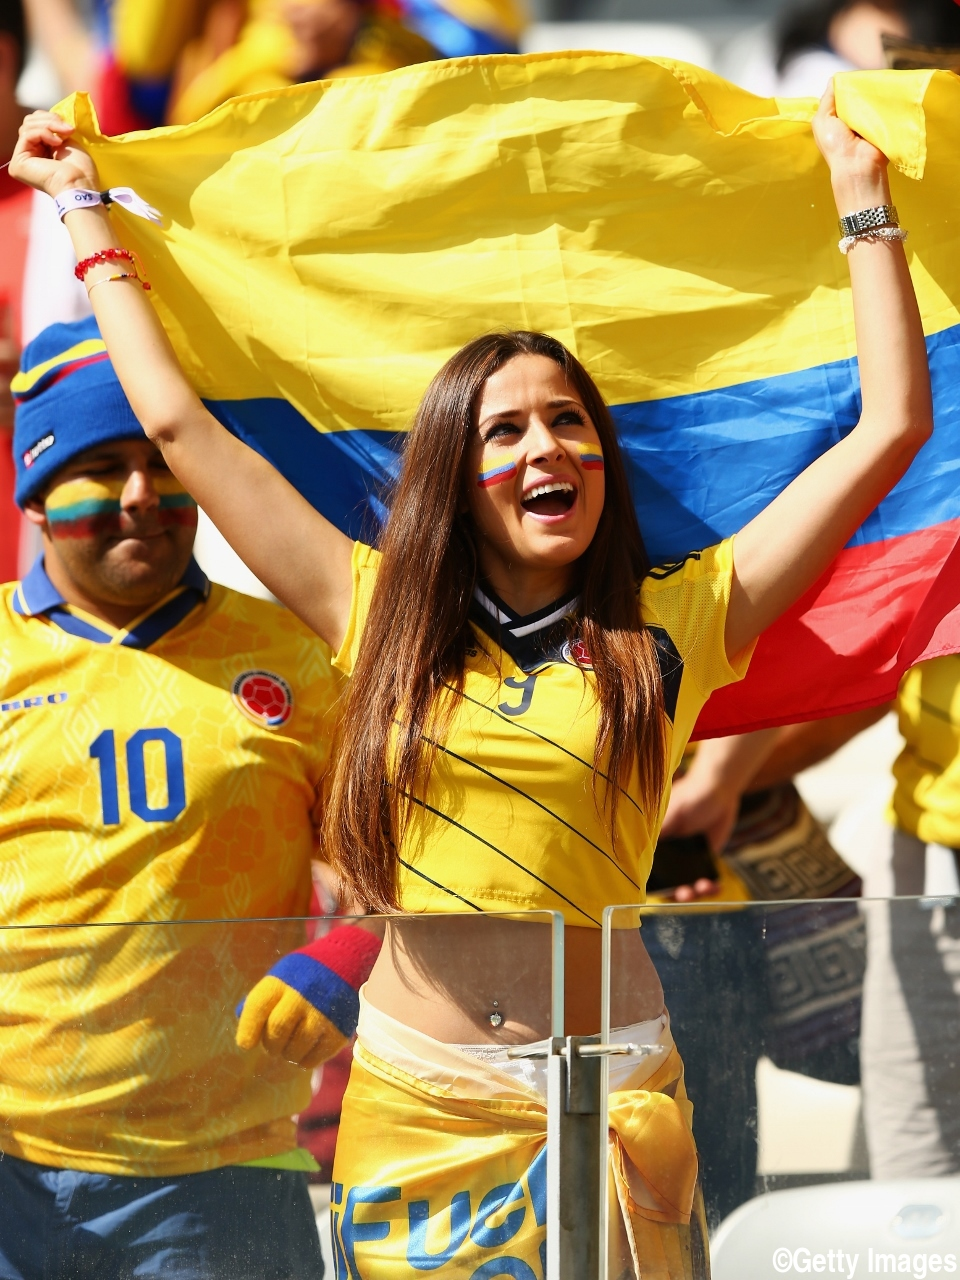 Photos Of Hot Female Fans In World Cup 2018 - All The Hottest Female Fans-3774